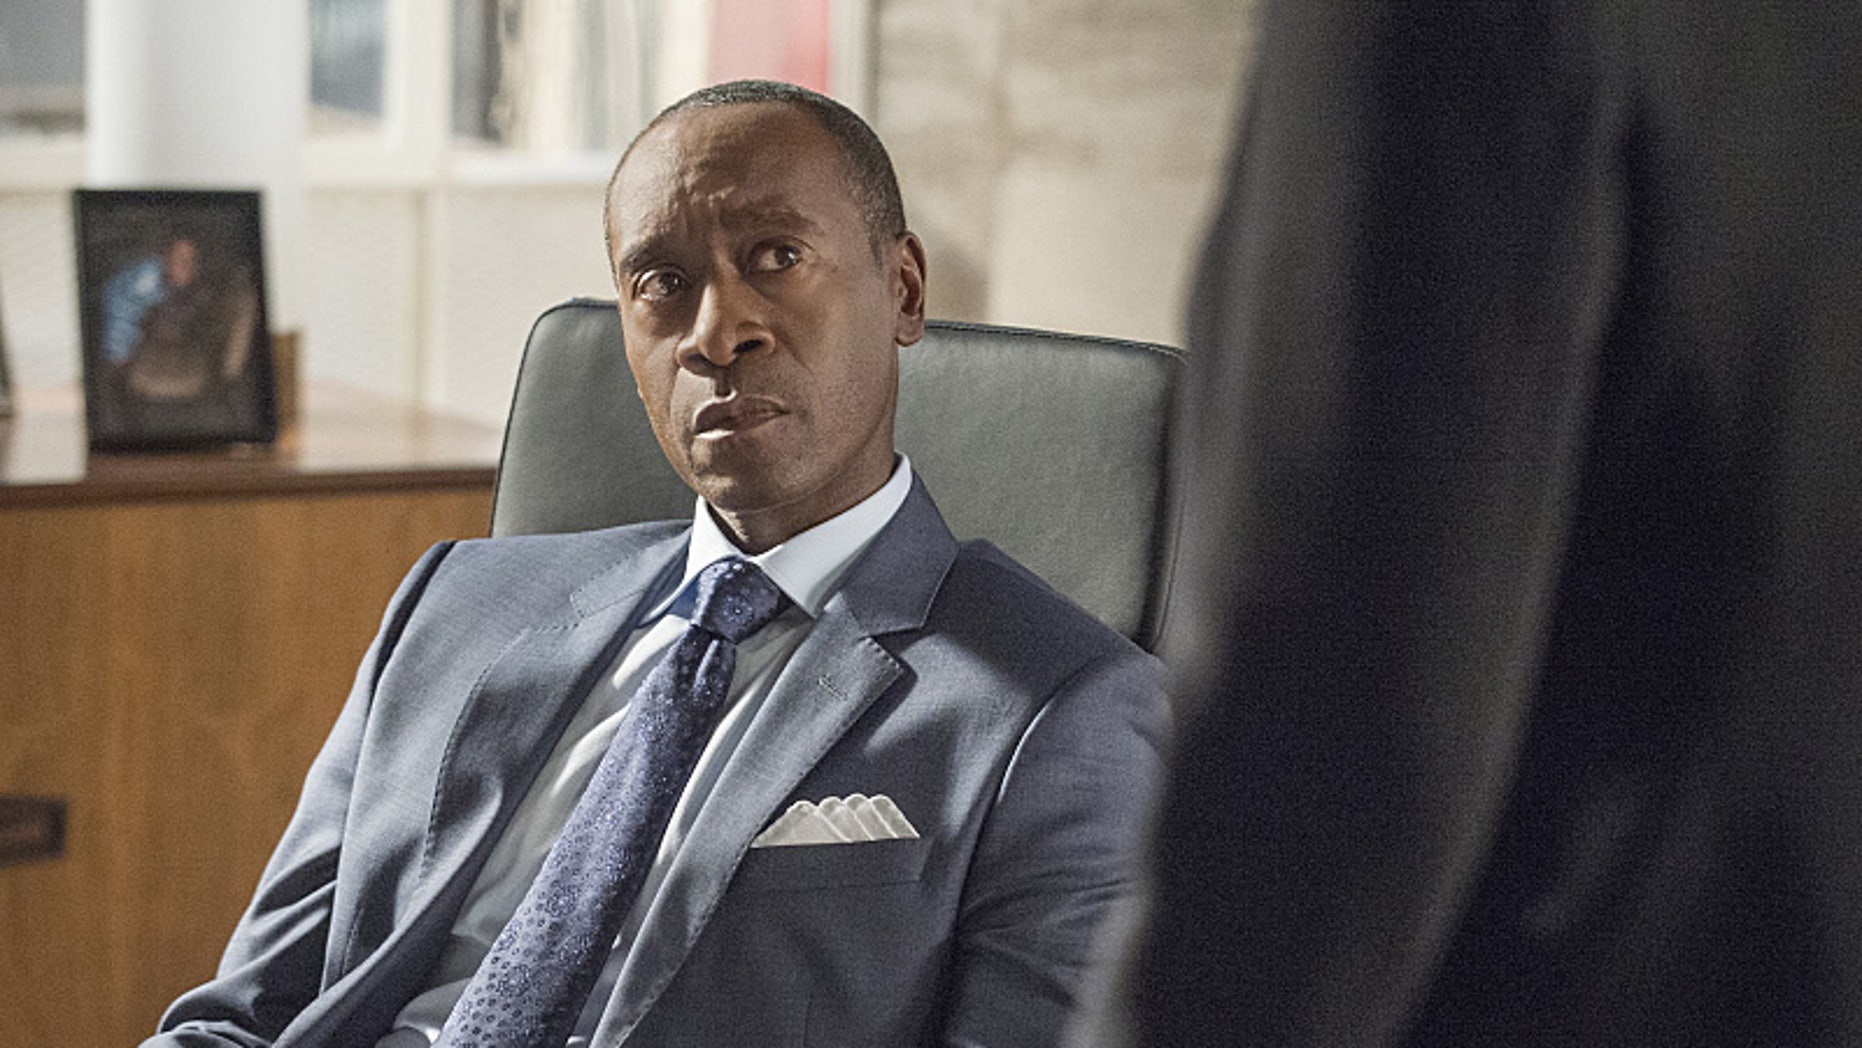 Don Cheadle as Marty Kaan in House of Lies